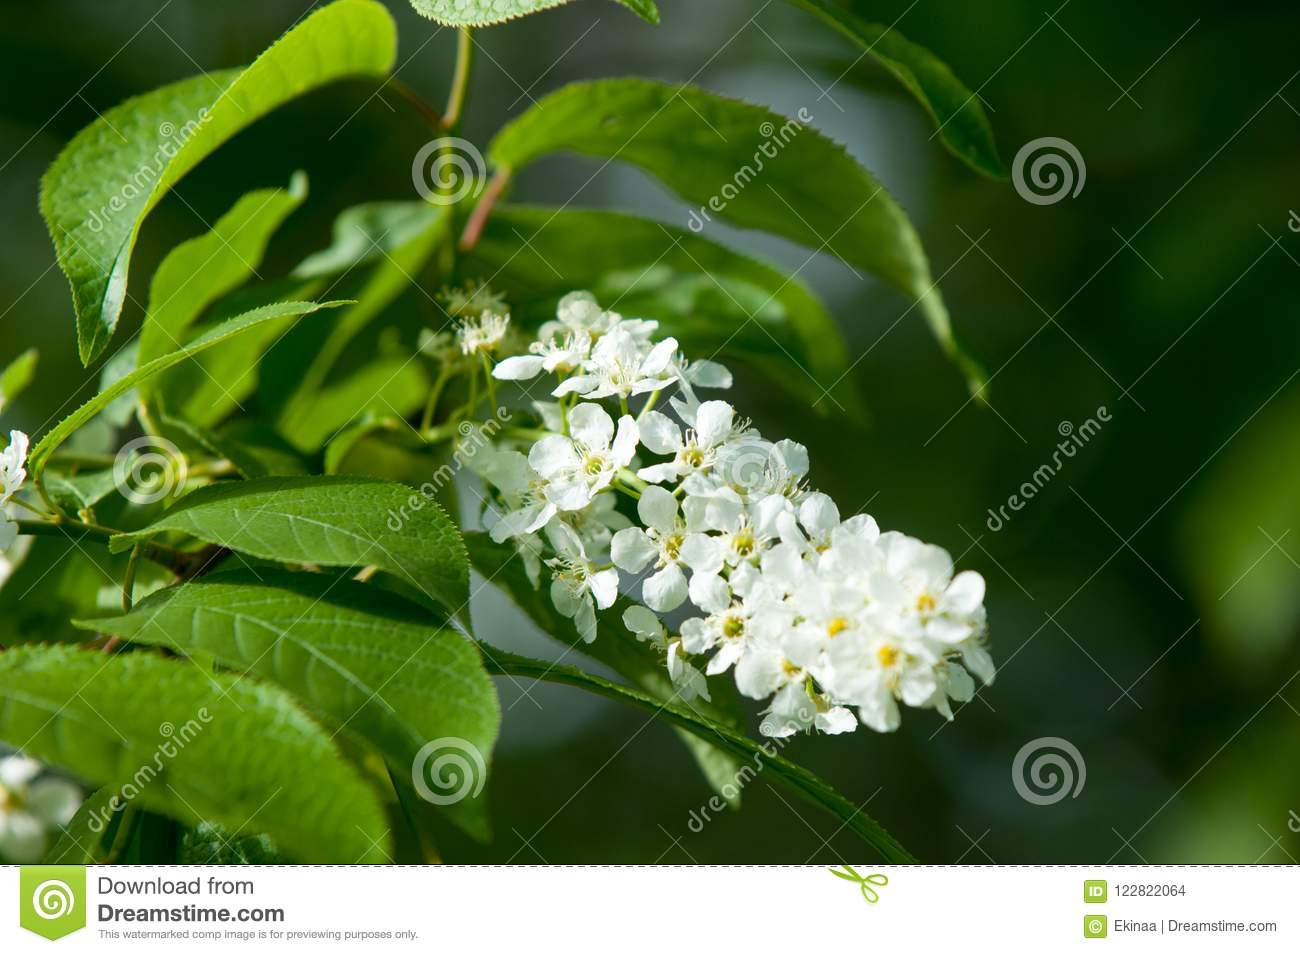 Spring flowers bird spring flowers bird cherry a tree with wh spring flowers bird cherry a tree with white fragrant flowers collected in a brush and black berries a small wild cherry tree or shrub mightylinksfo